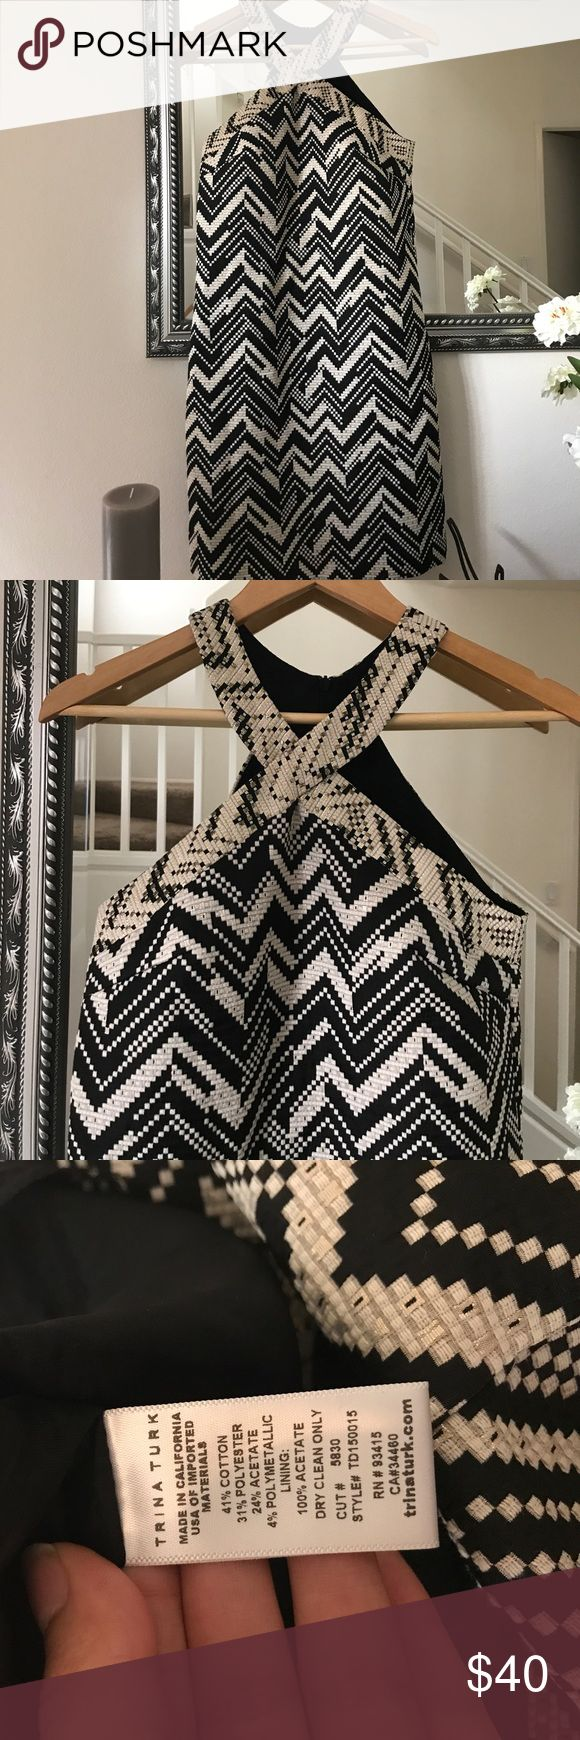 Trina Turk black/cream chevron print dress Trina Turk black/cream halter style dress; dress has hints of gold as well; dress has attached slip inside; size 2 & new/never worn; open to offers :) Trina Turk Dresses